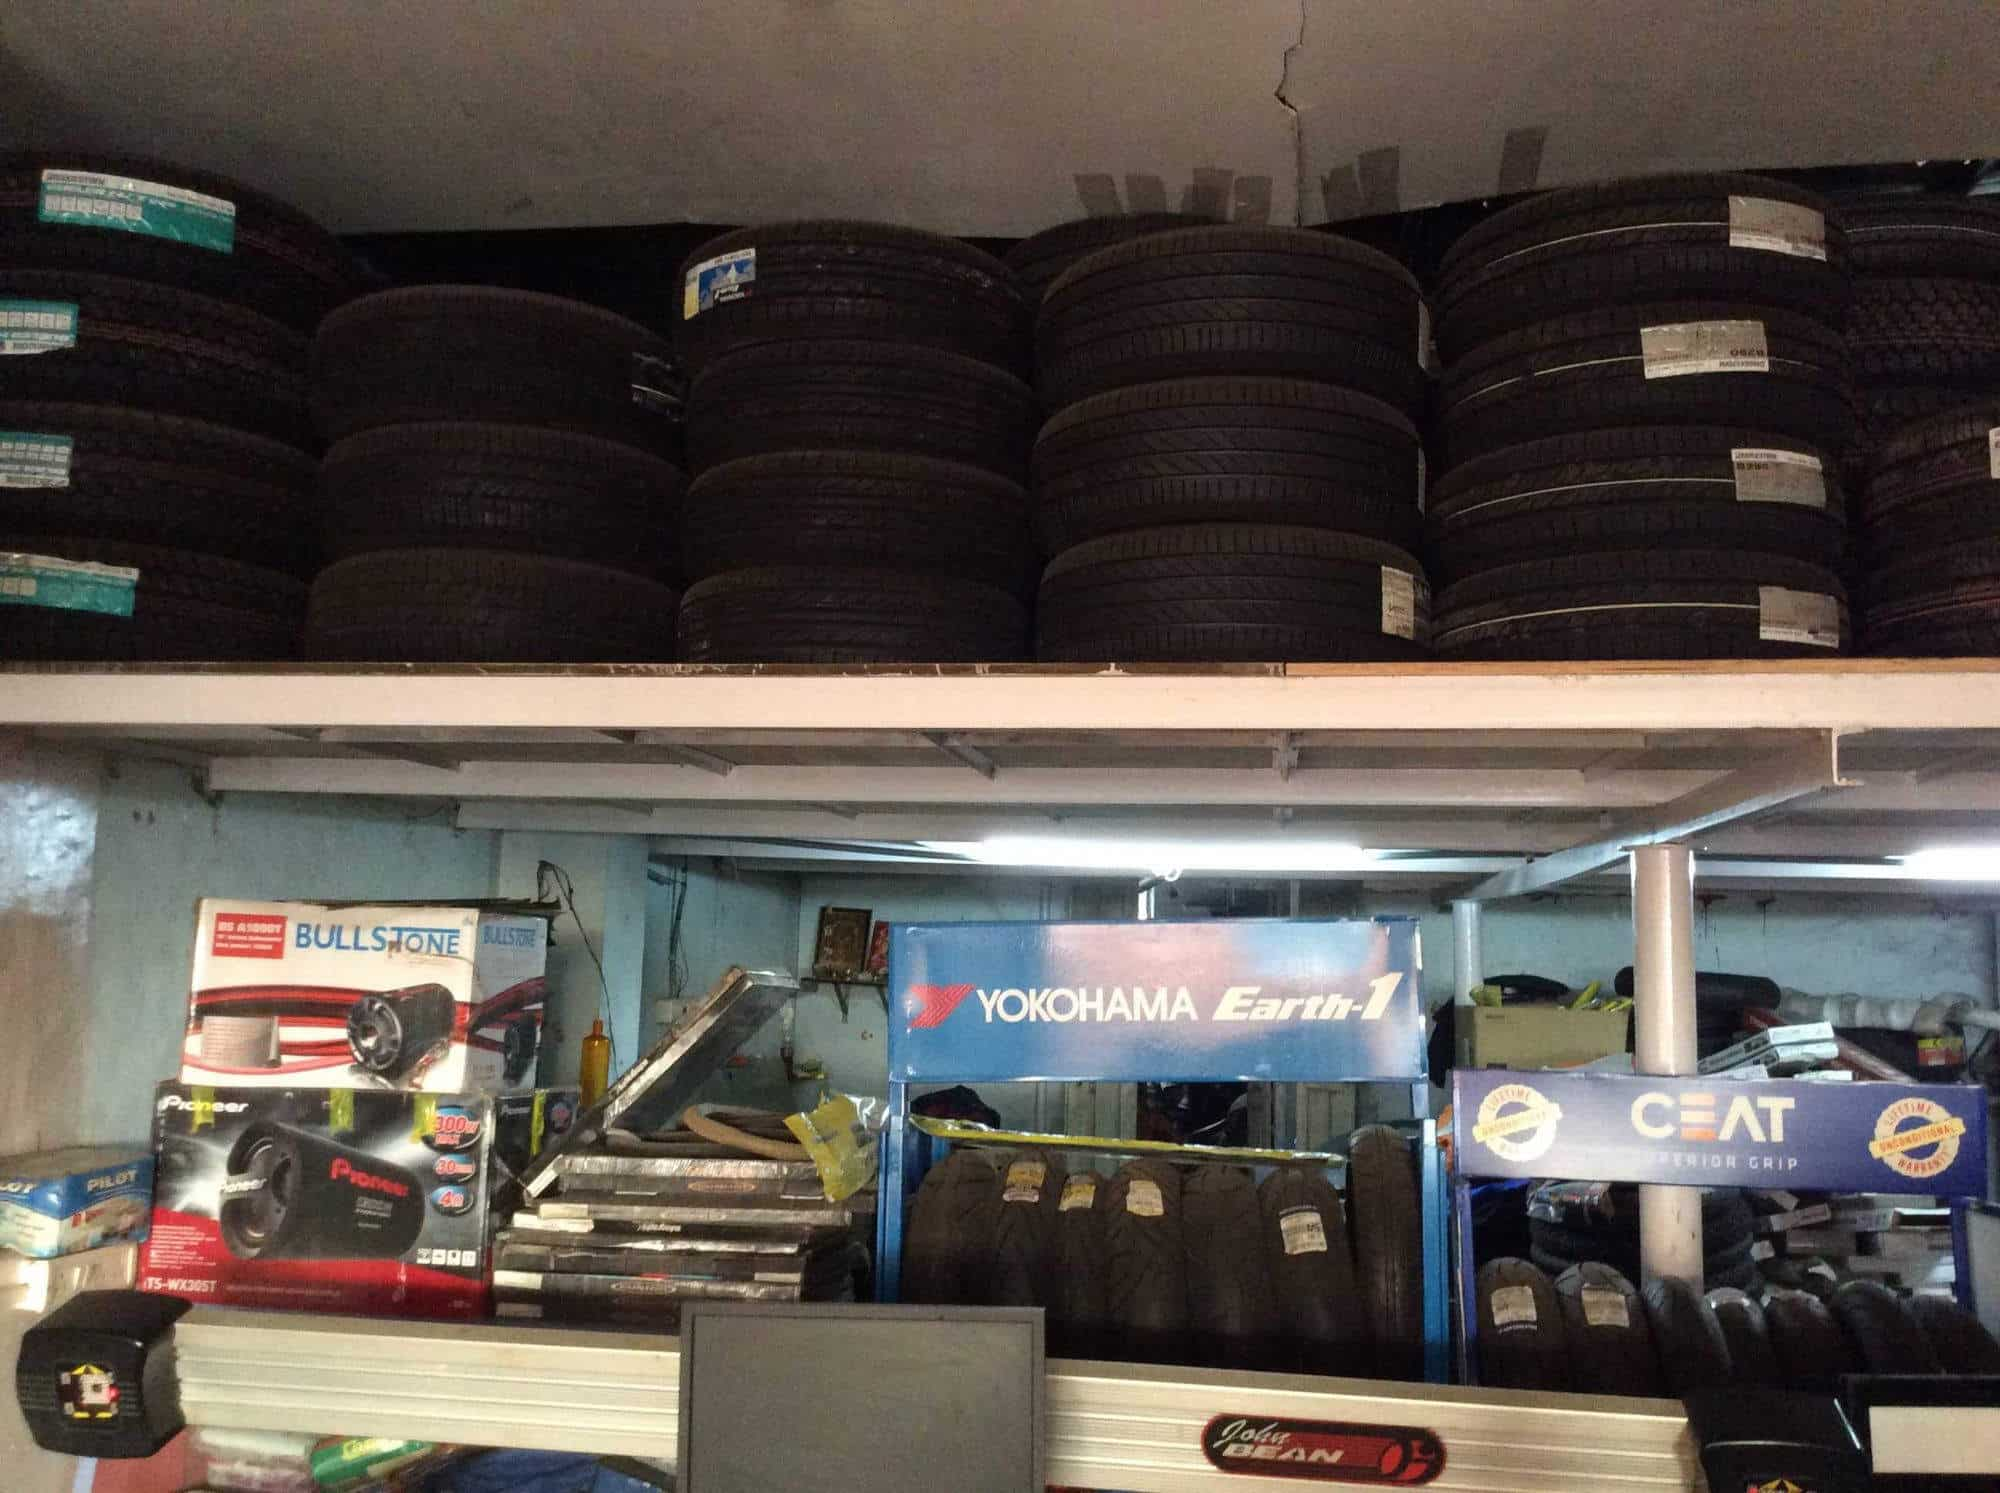 ... Inside View of Tyre Shop - PSR Wheels Photos, Kompally, Hyderabad - Tyre Dealers ...